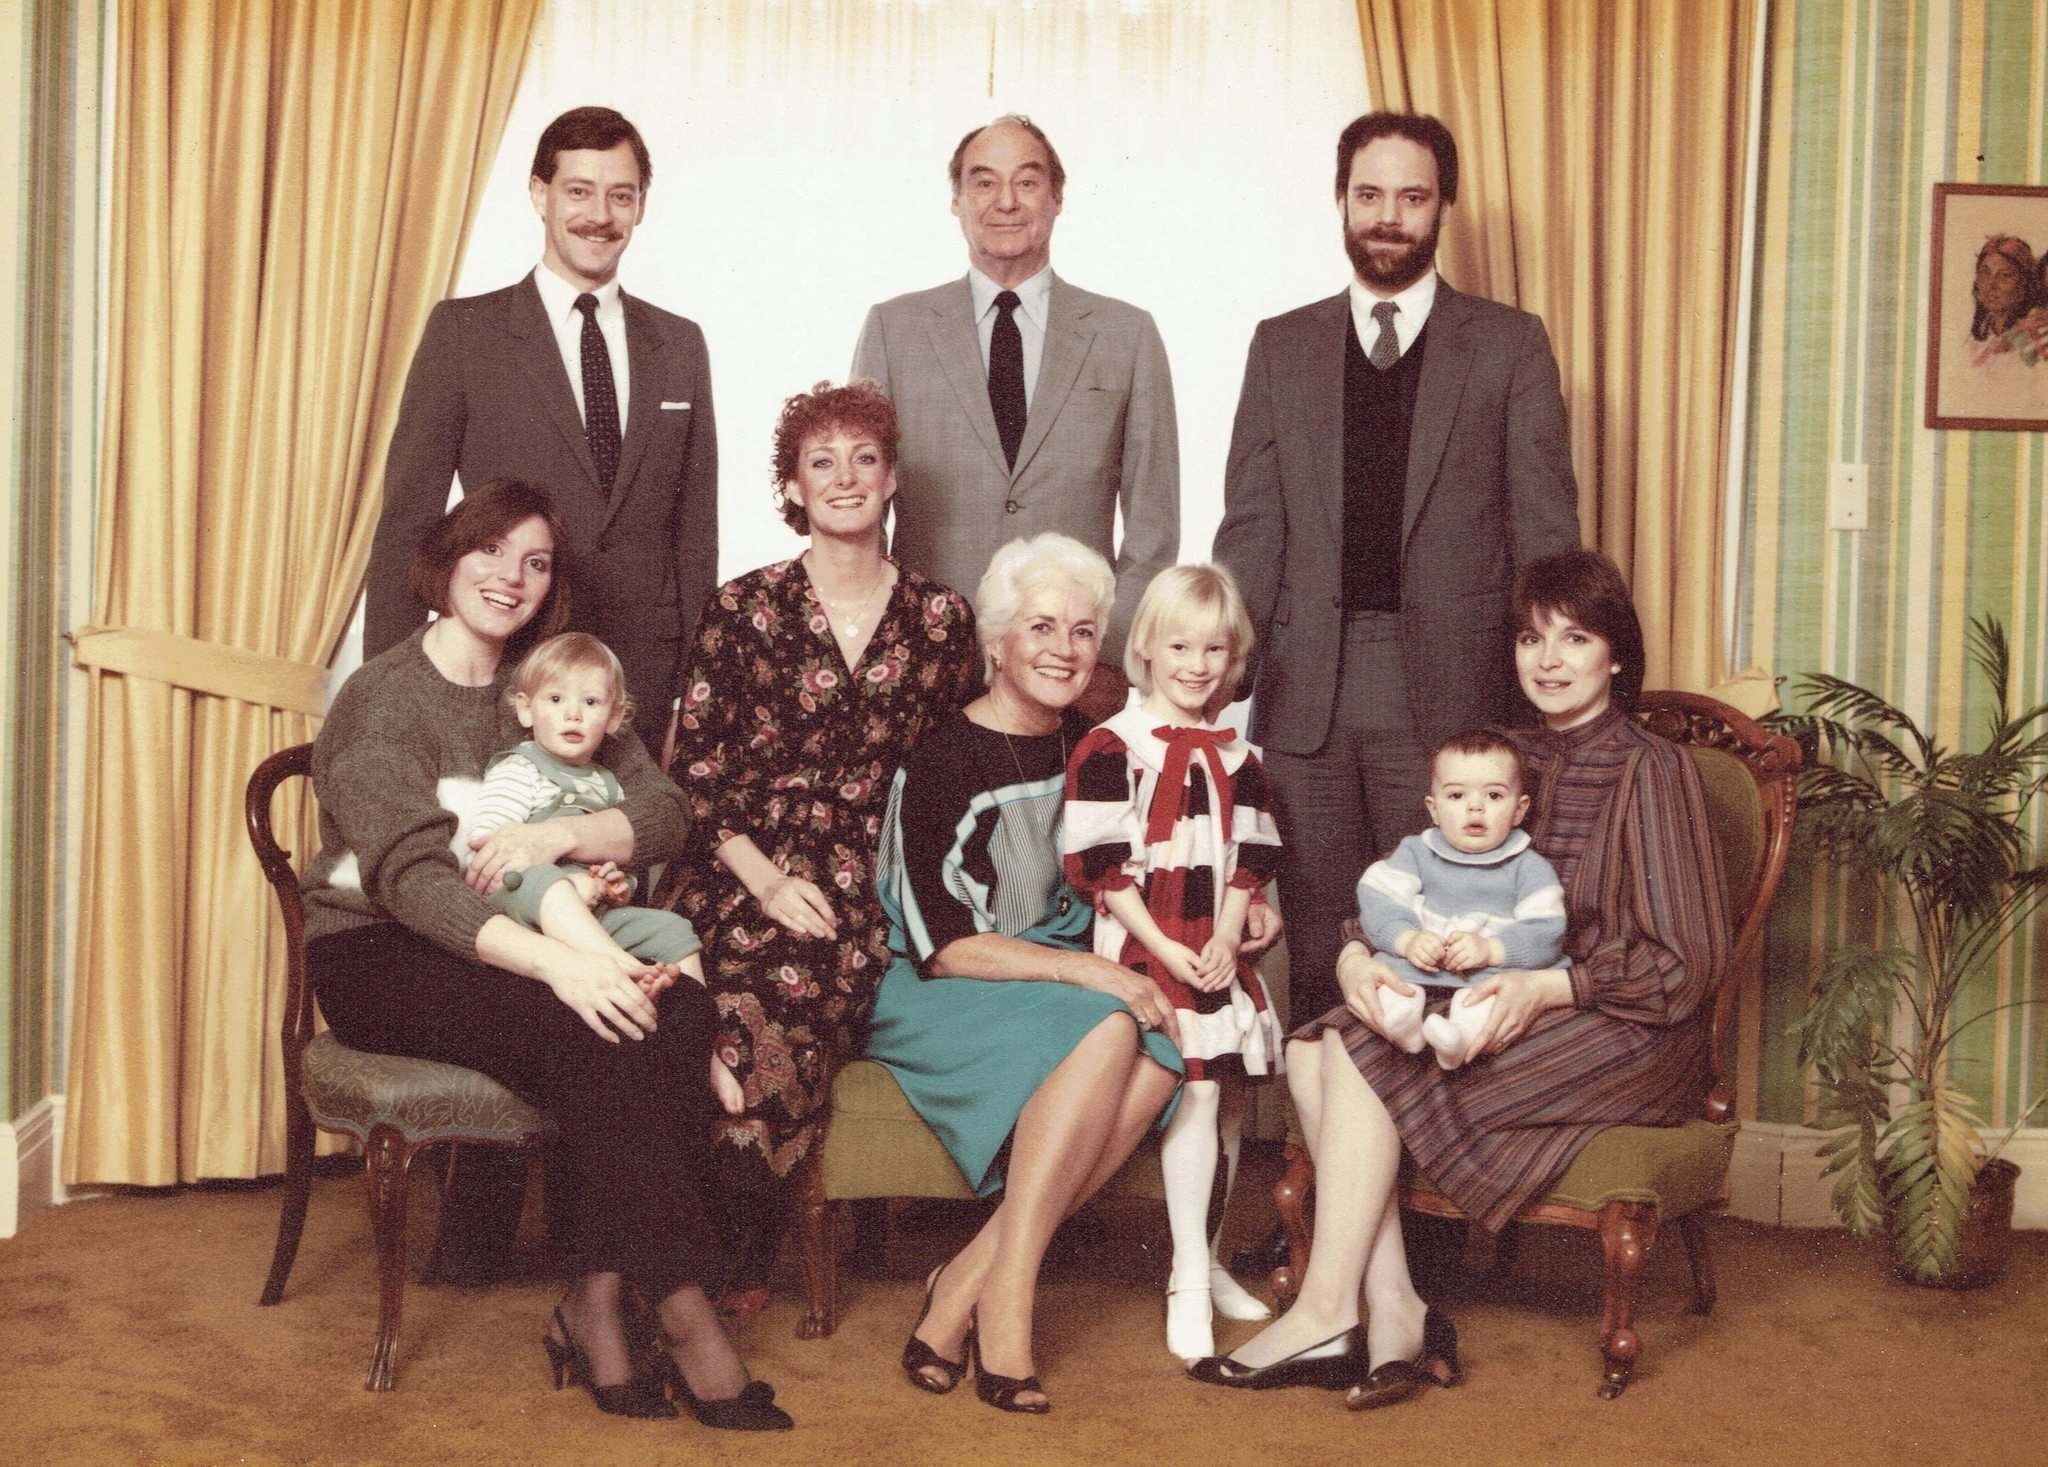 Jack Perrin, centre, owner of Hotel Fort Garry, in a family portrait taken in a suite at the hotel in 1984. John Perrin, son, is at left. (Supplied)</p>